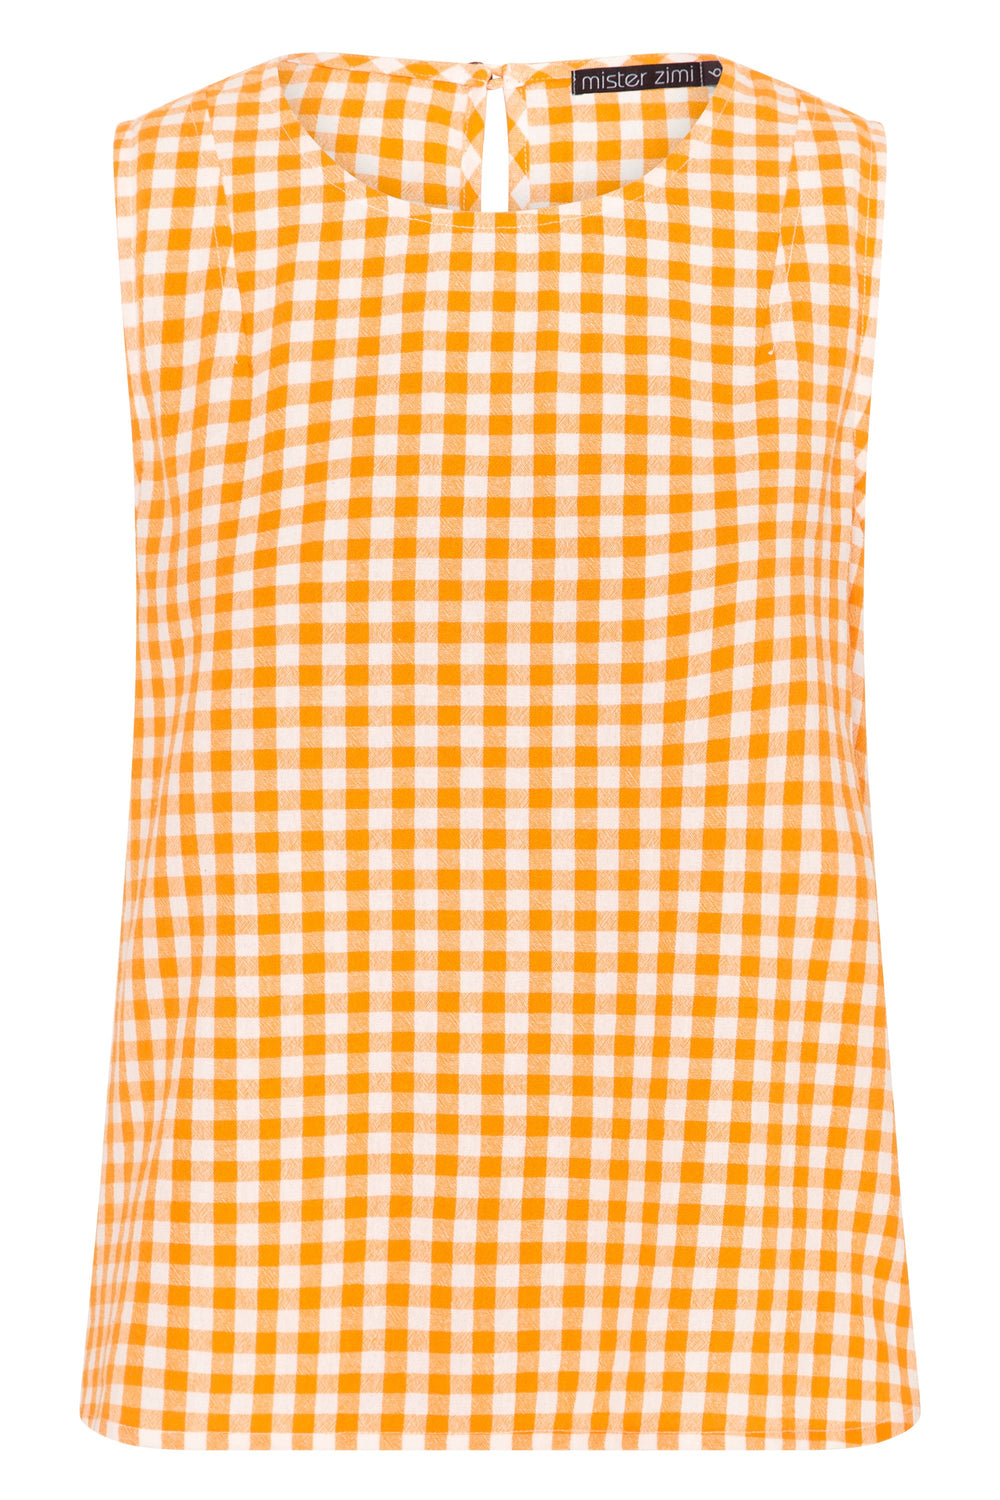 Lottie Top In Apricot Gingham